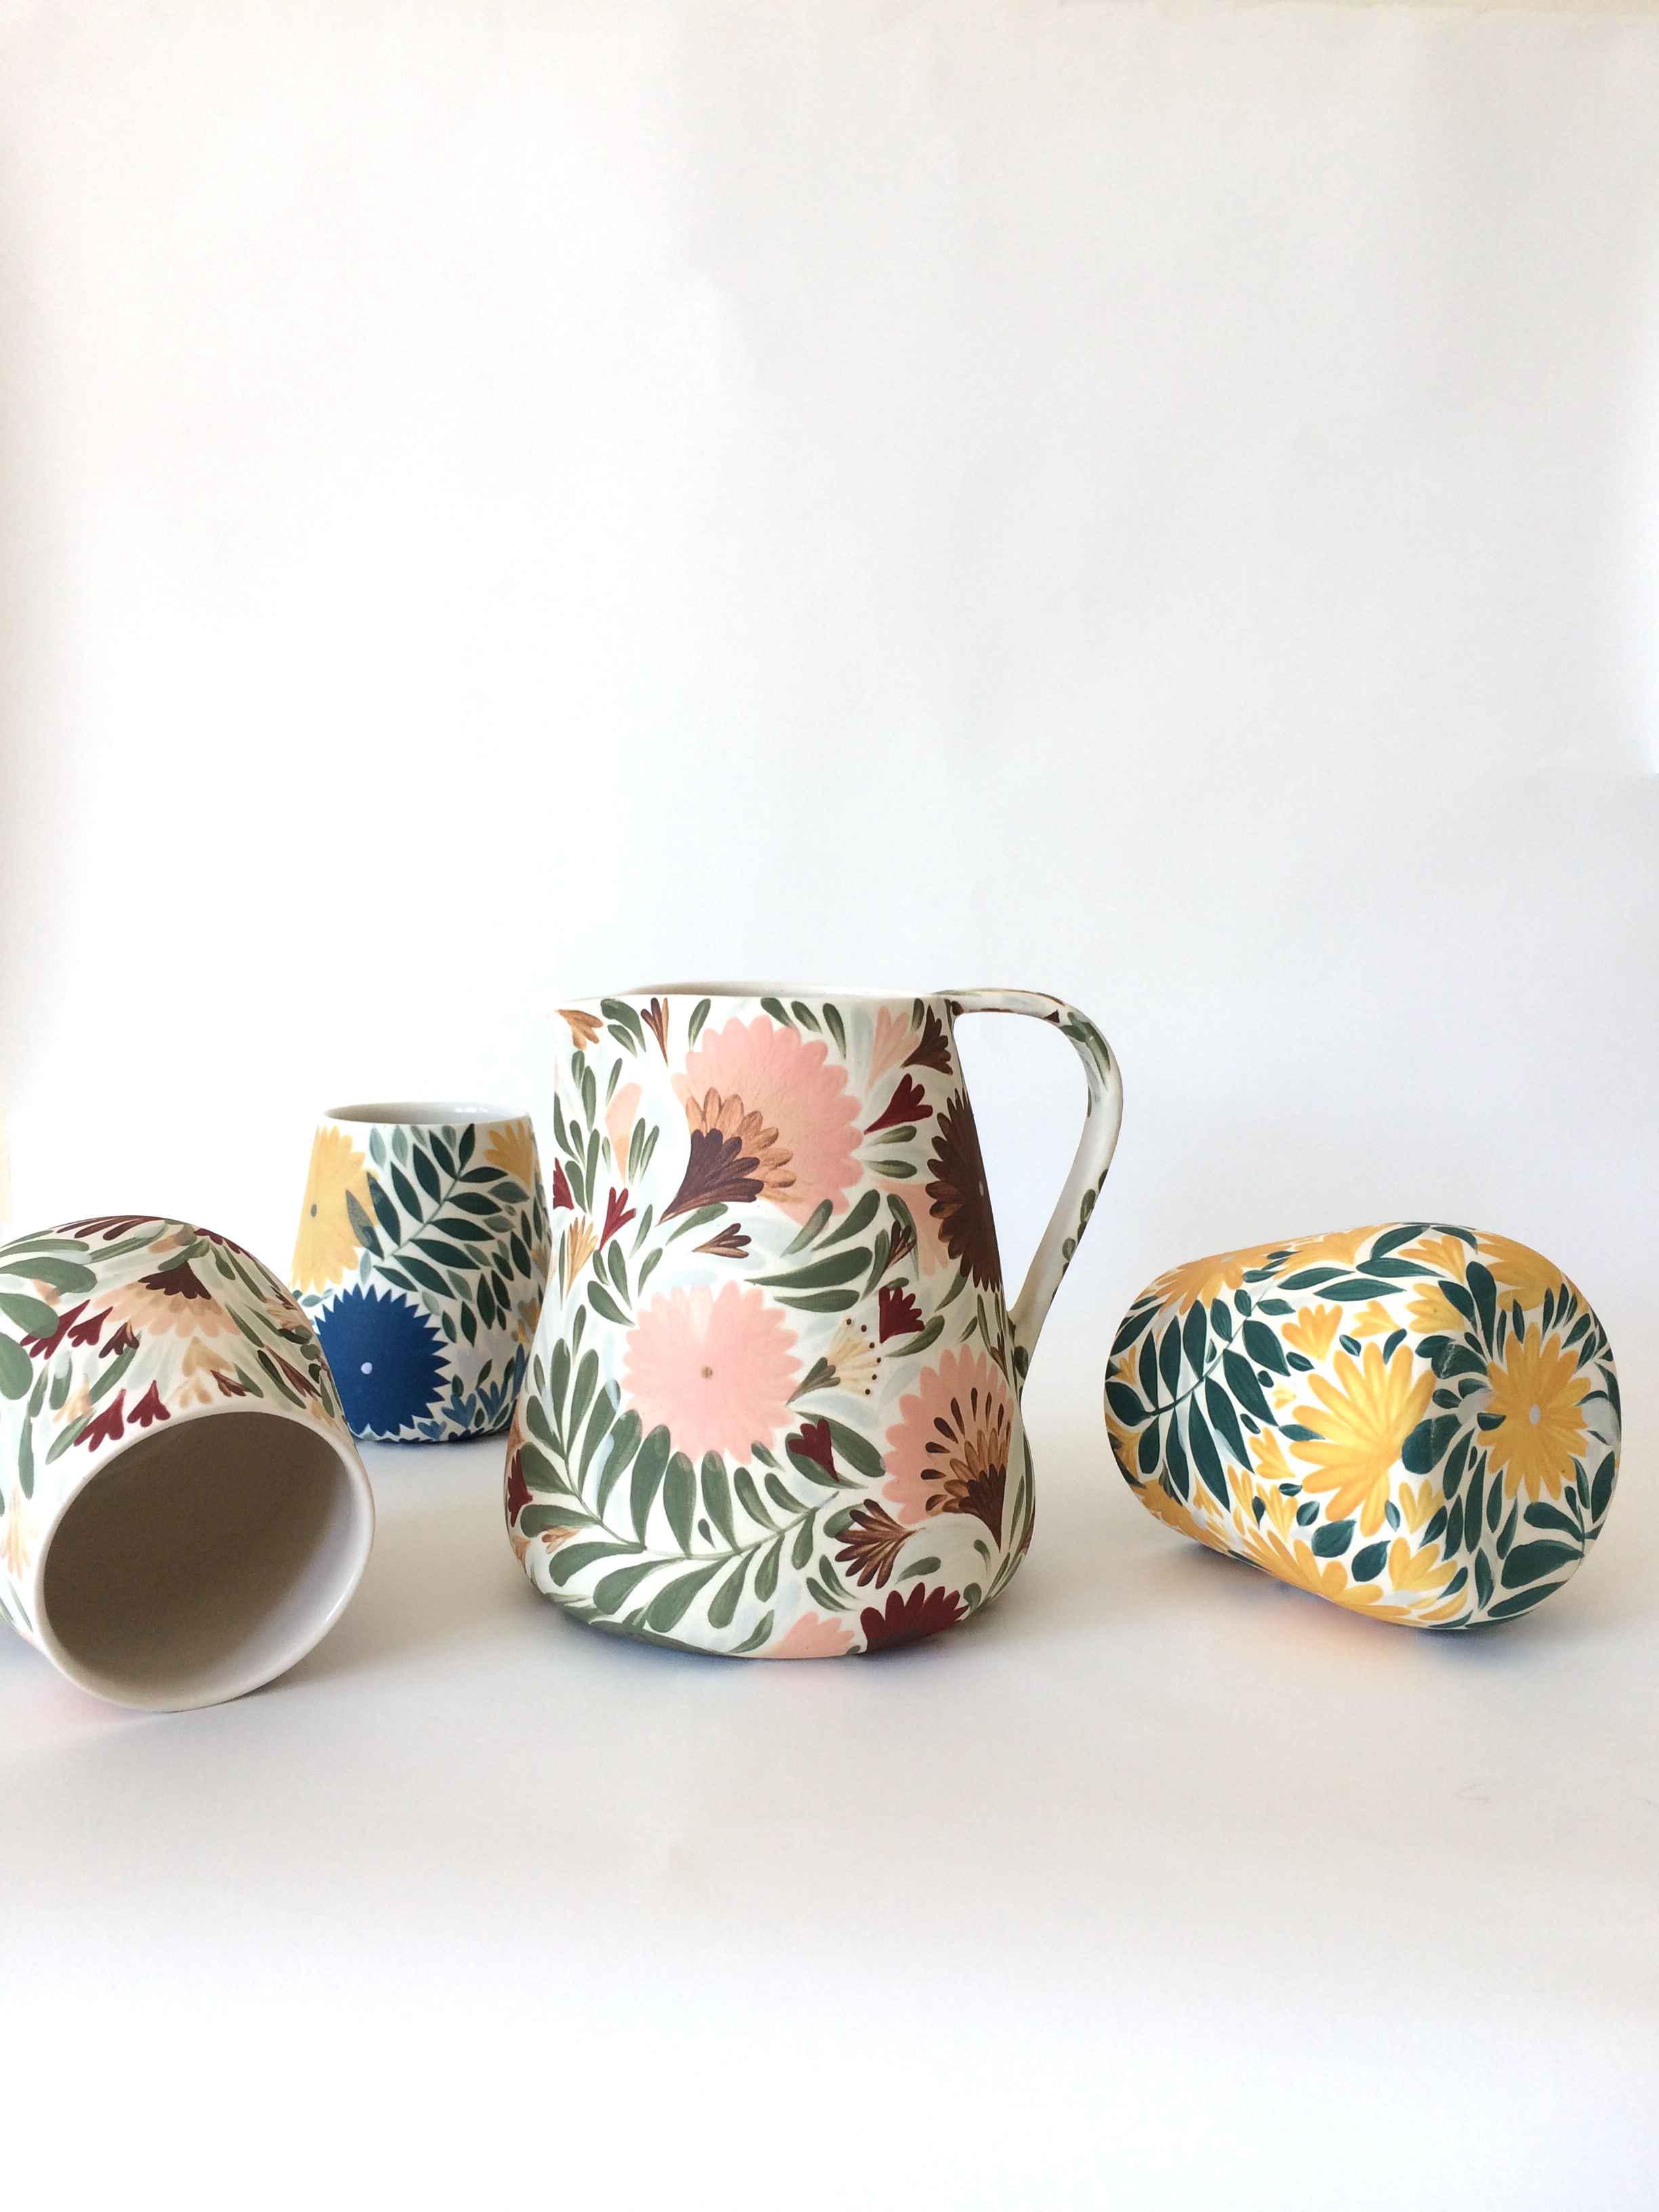 Botanical Ceramics - CERAMIC / MAY 2018